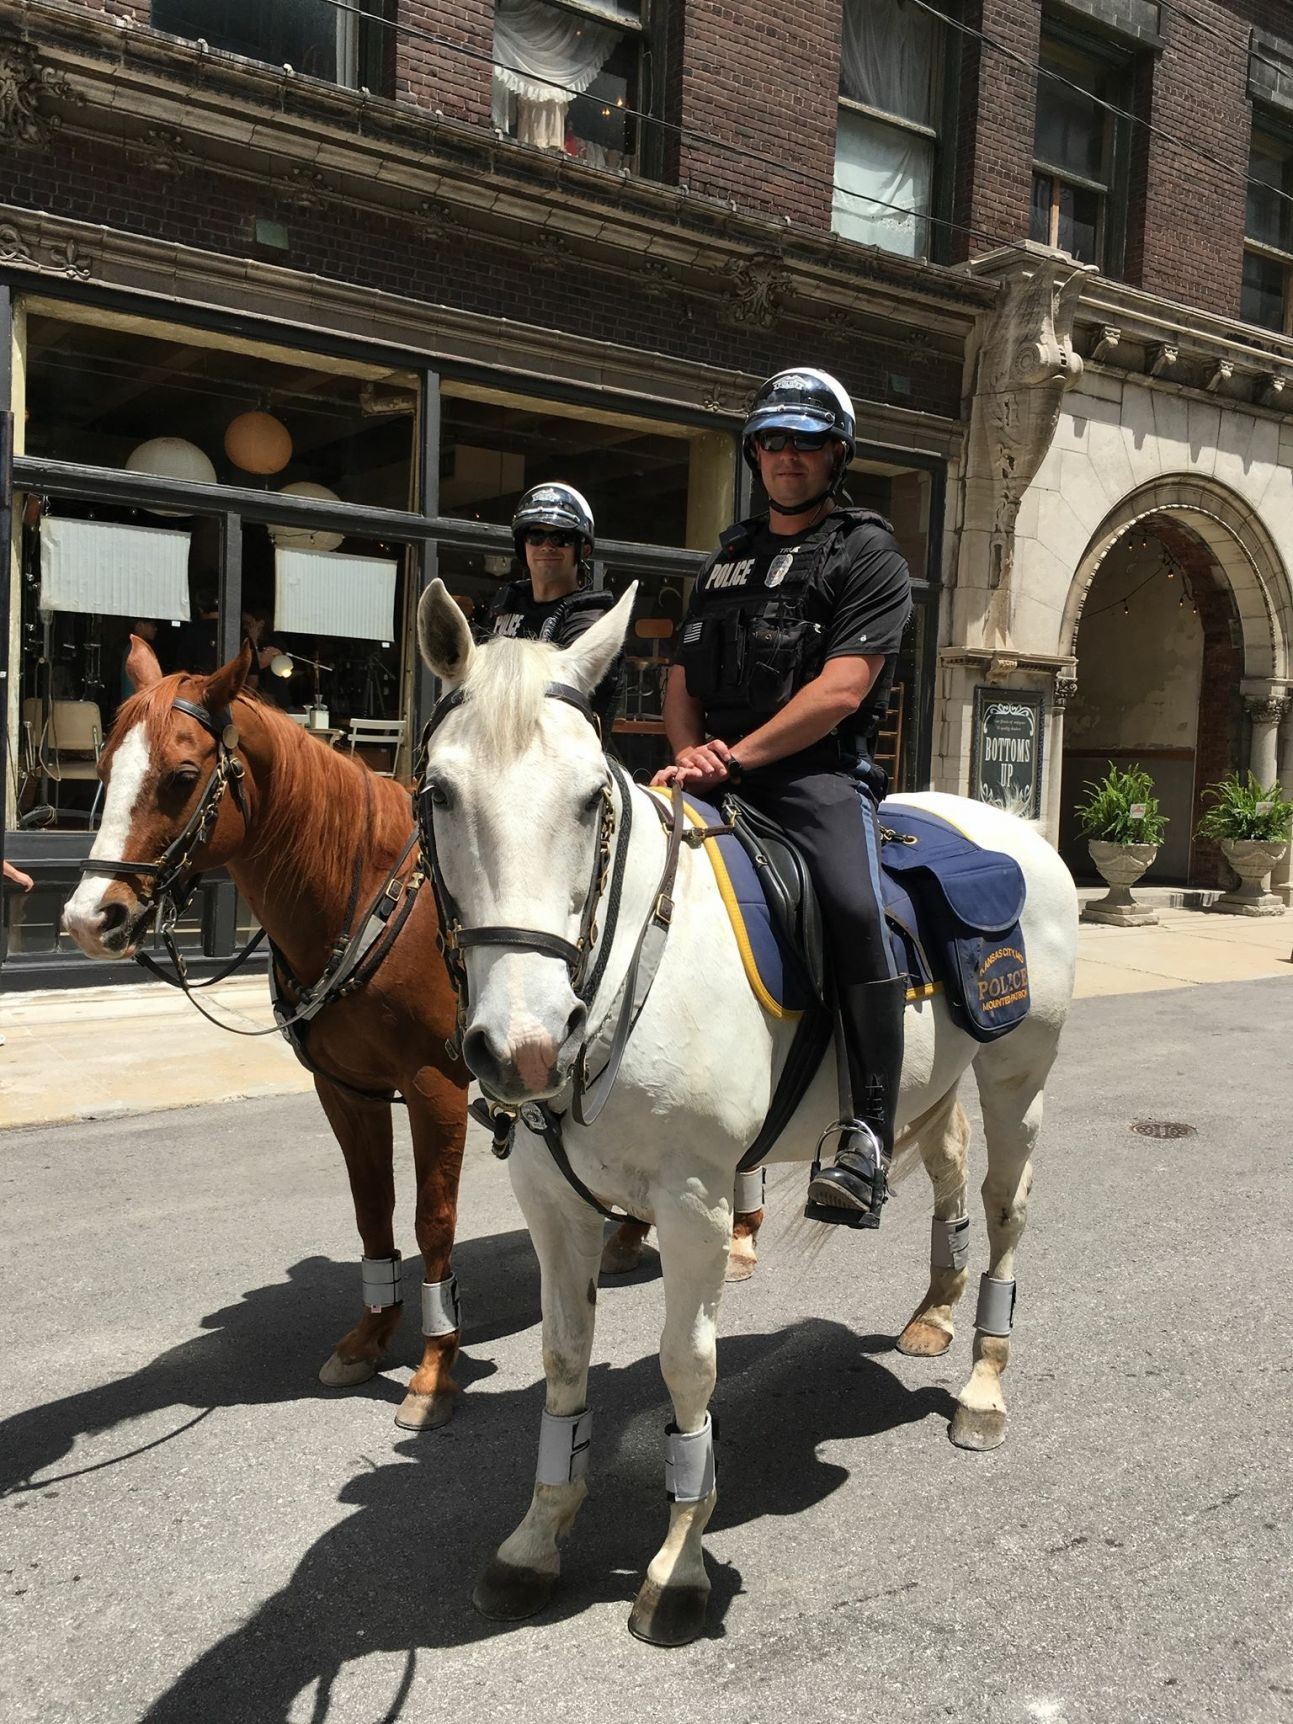 West Bottoms welcomes the Mounted Patrol!